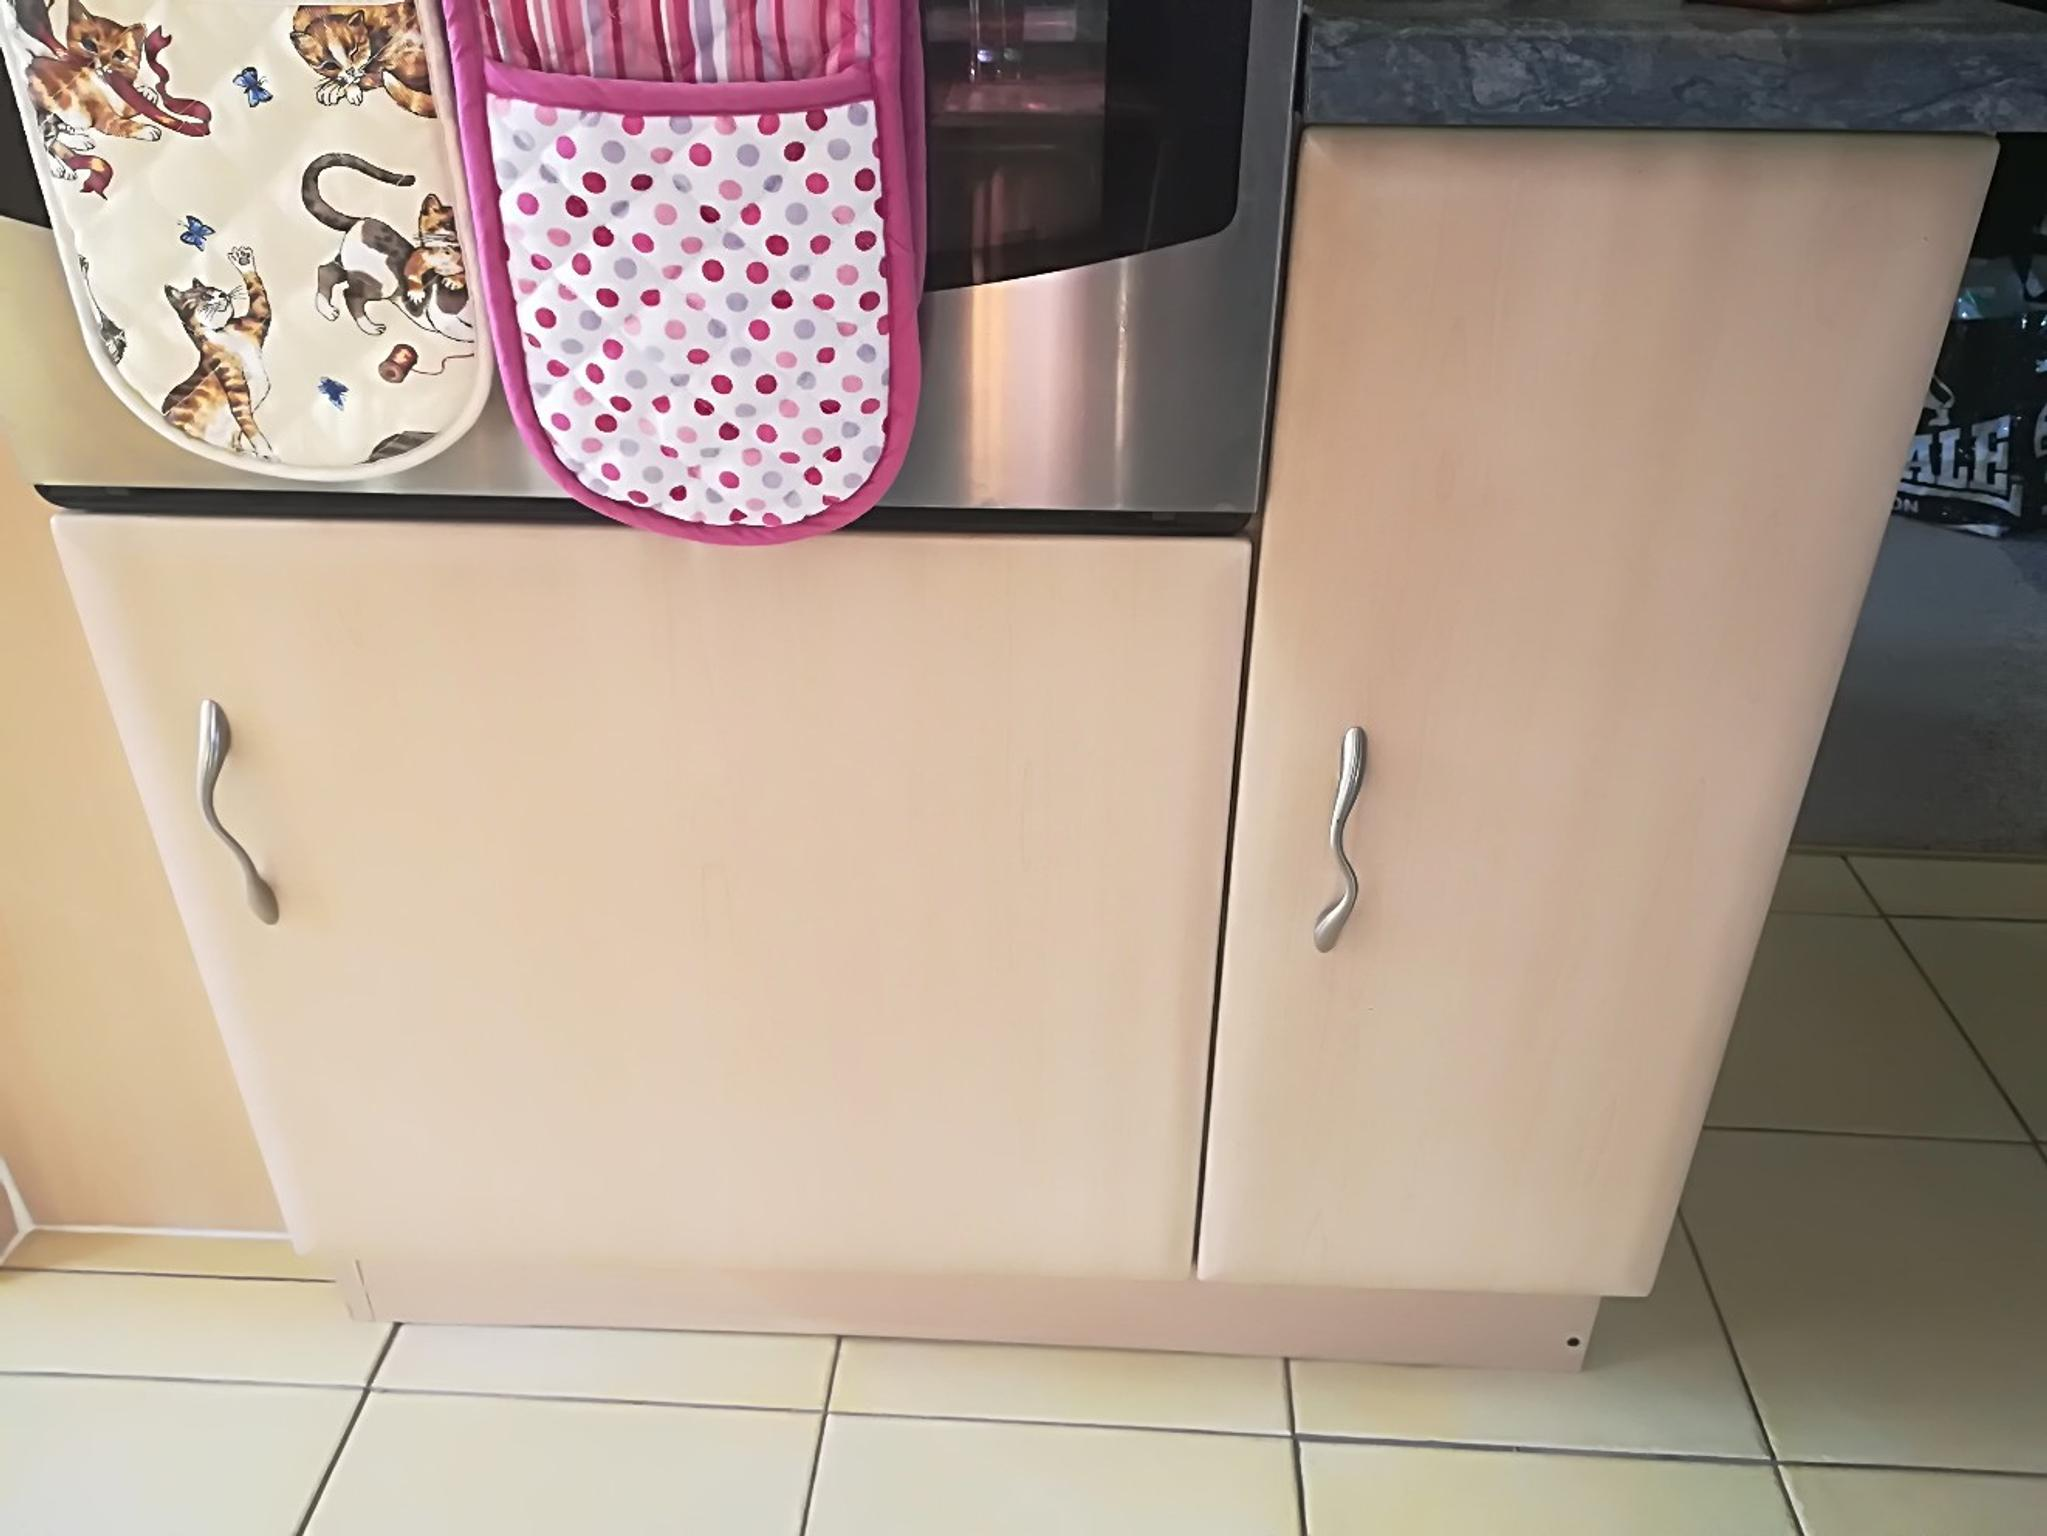 Pear Wood Kitchen Units In Dy9 Dudley For 270 00 For Sale Shpock